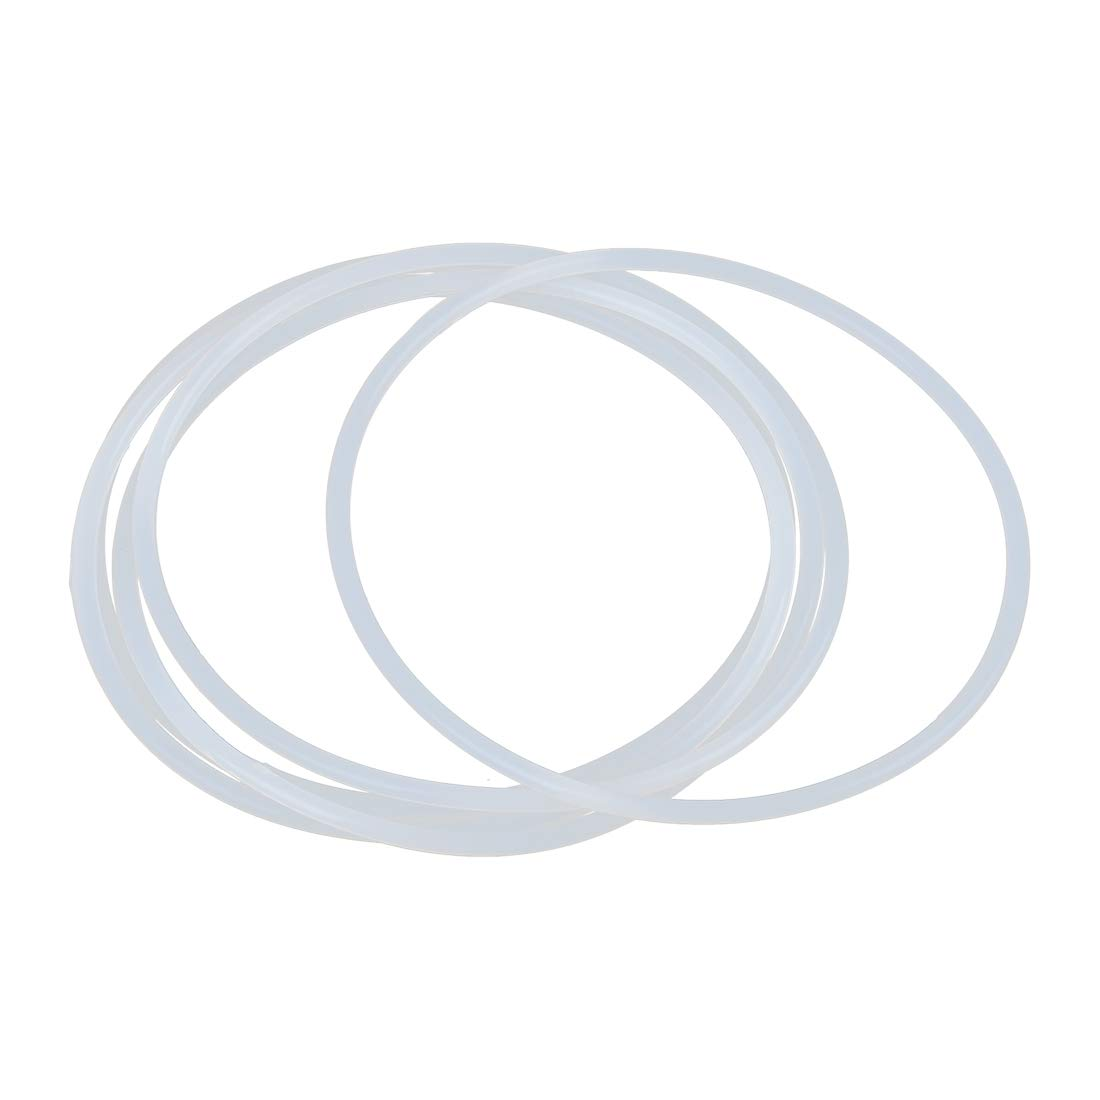 X AUTOHAUX 5pcs White Silicone Rubber O-Ring Seal Gasket for Car 95mm x 3.1mm